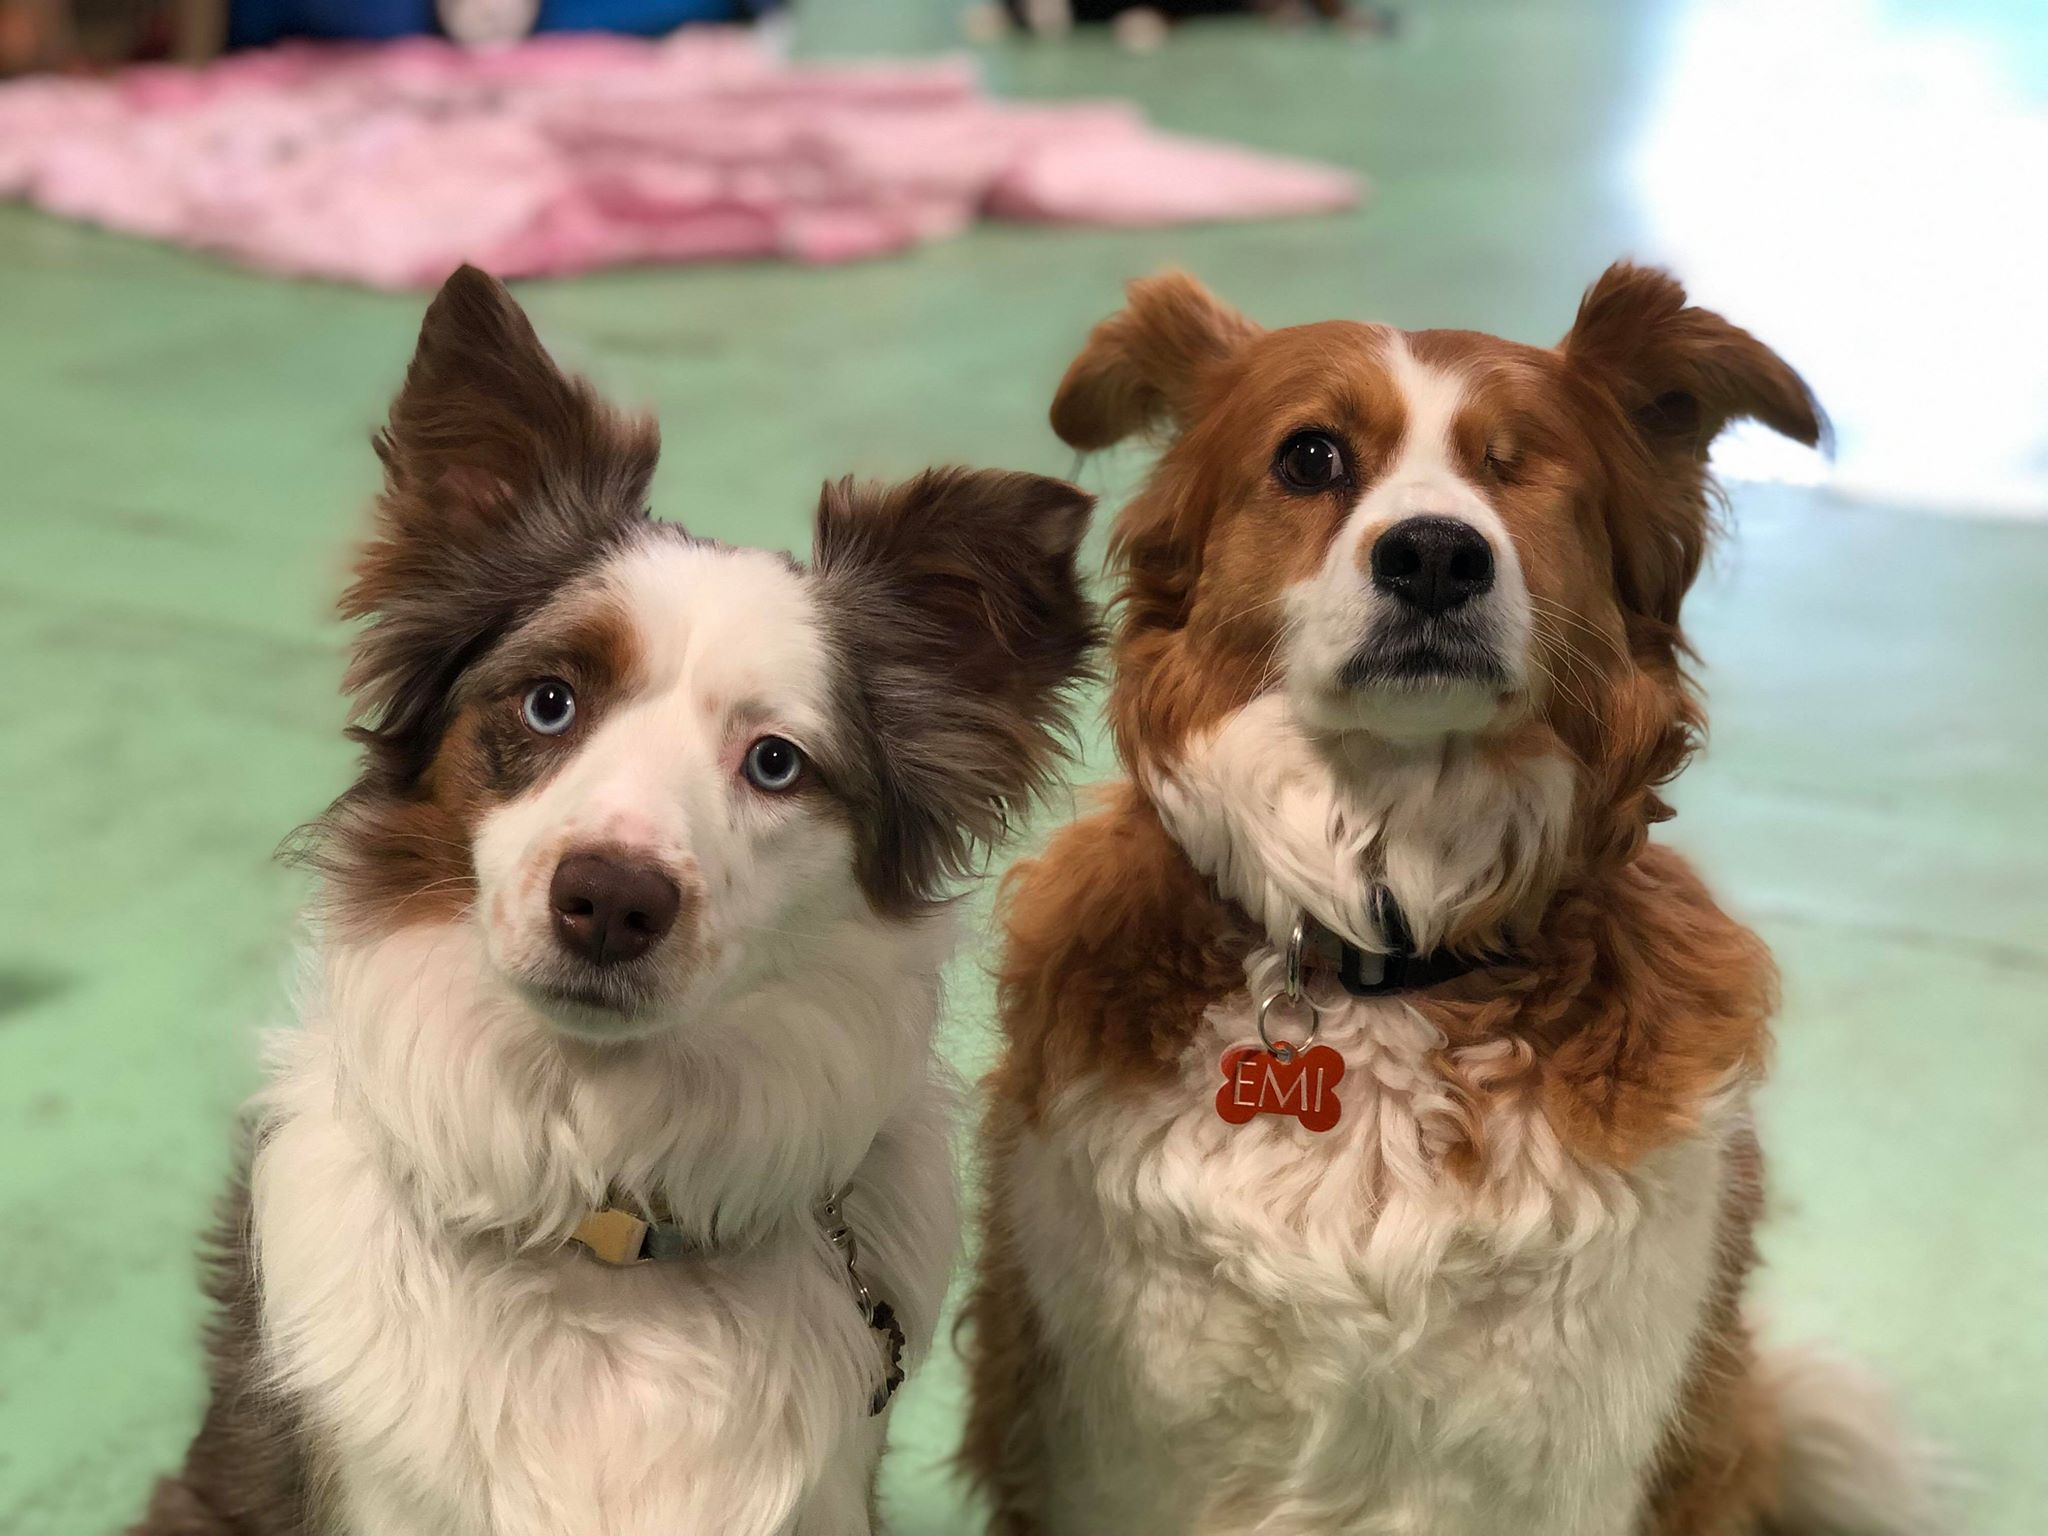 Two staff dogs, Beau (left) and Emi (right)